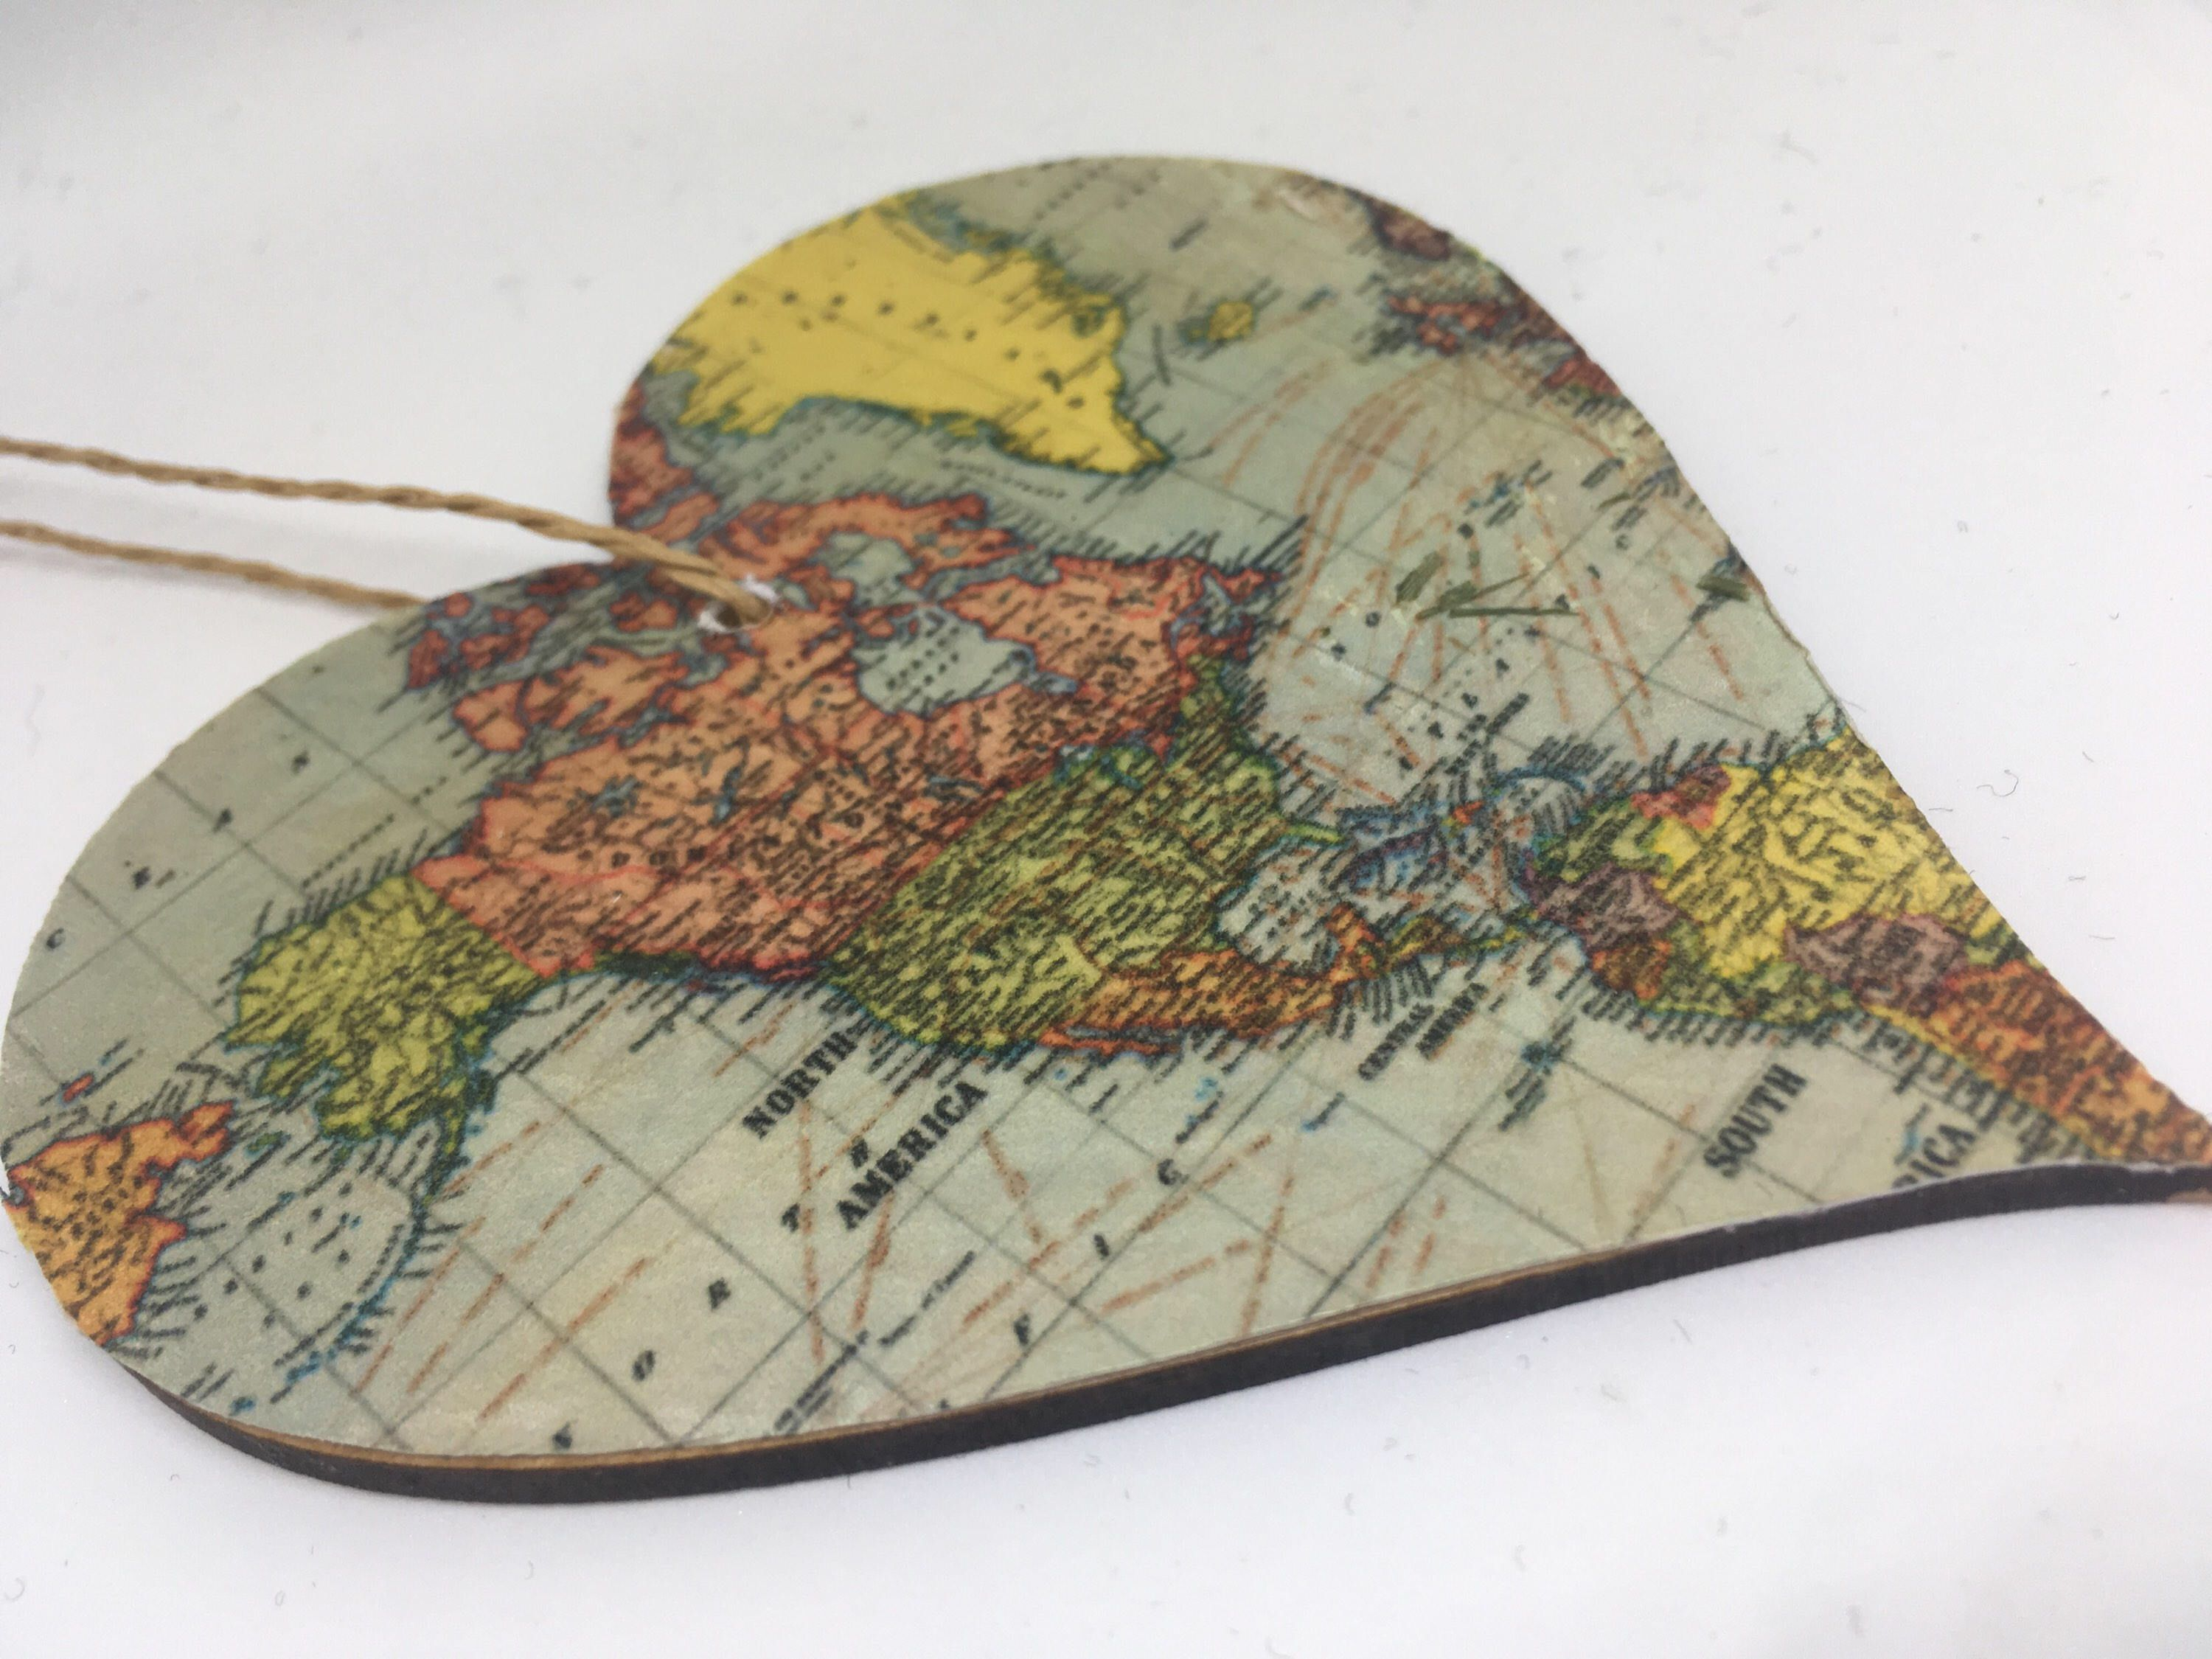 United states of america usa north america canada world map united states of america usa north america canada world map hanging heart decorative vintage map design home decor travel gift christ gumiabroncs Images